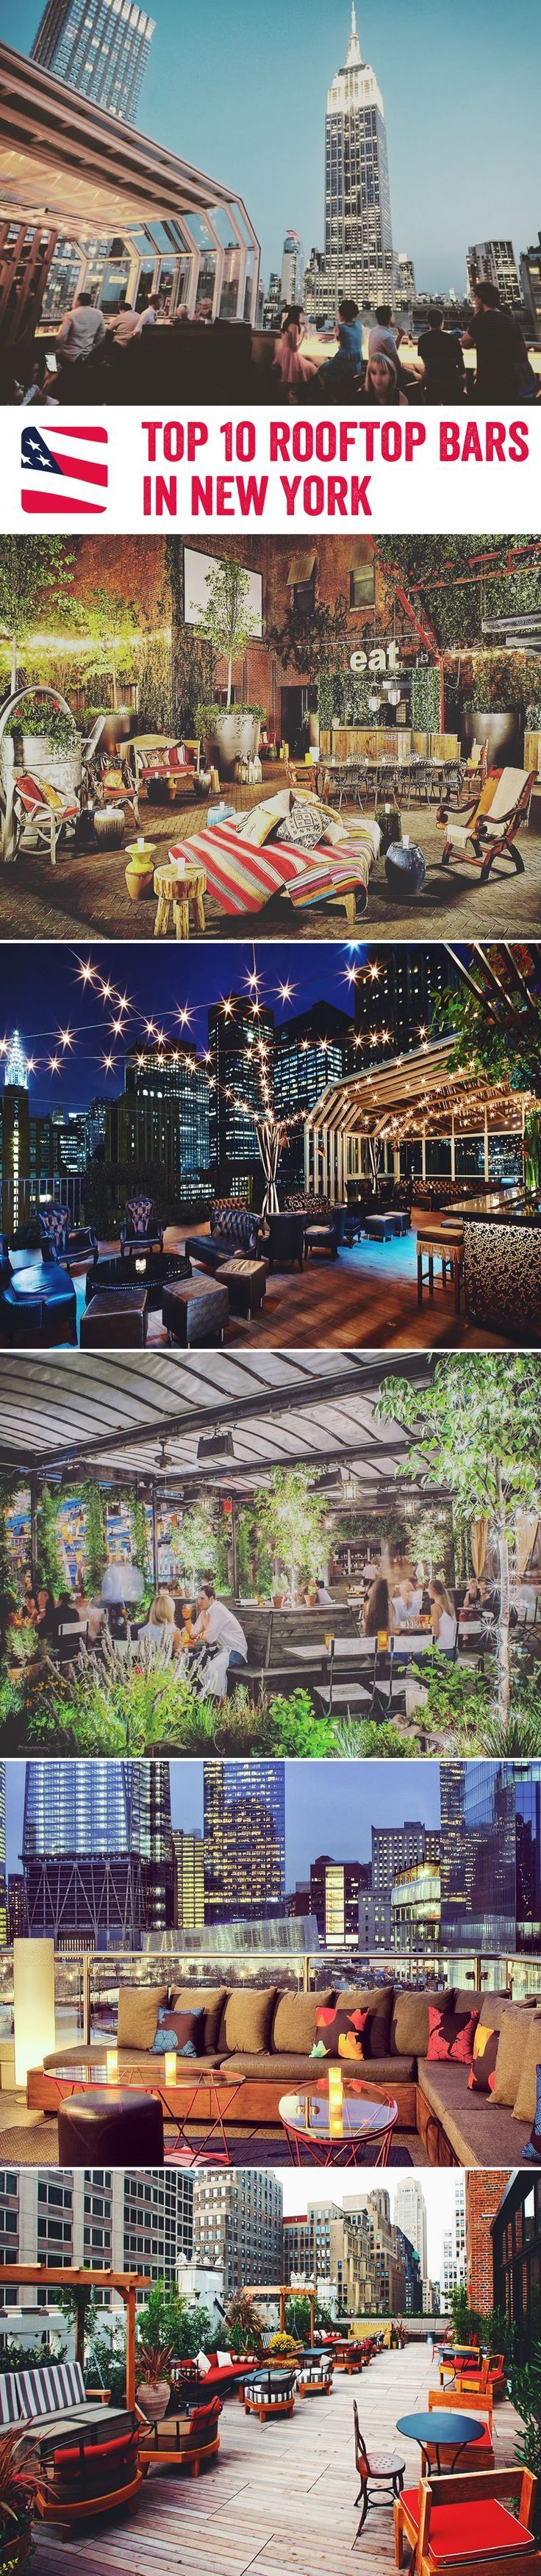 Best 25+ Places in new york ideas on Pinterest | In new york, Best ...